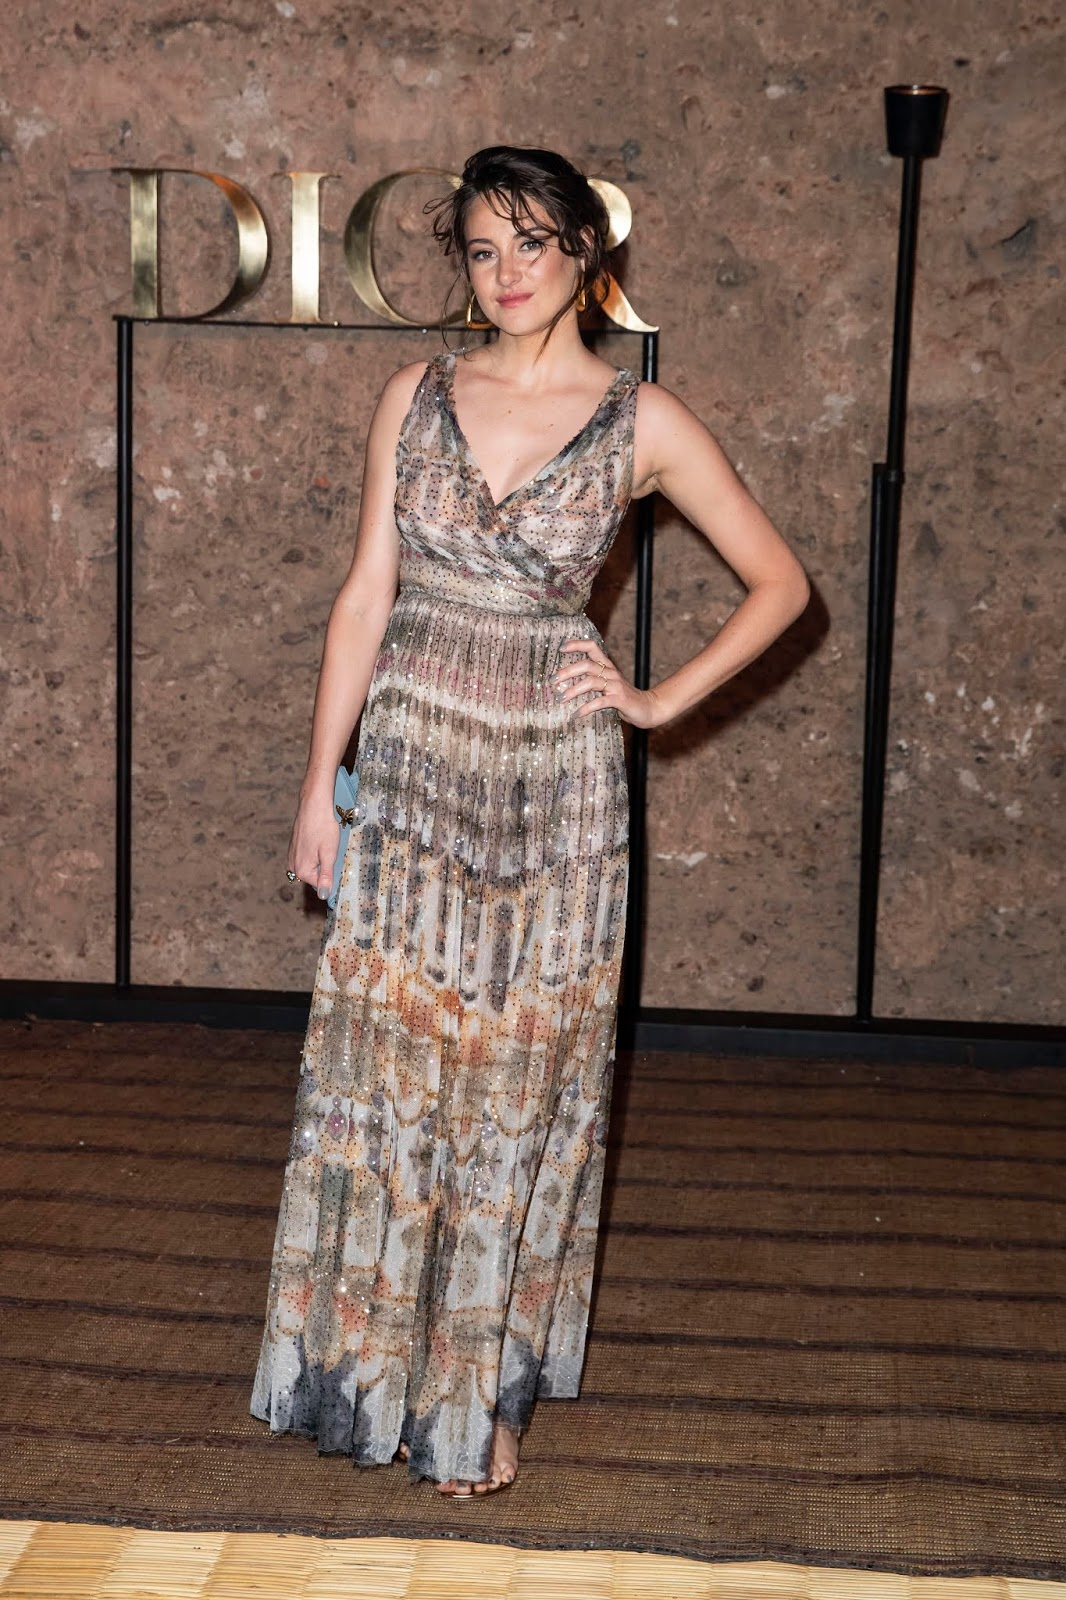 Actress Shailene Woodley TOP 25 Latest HD Photos 2019 Free Download